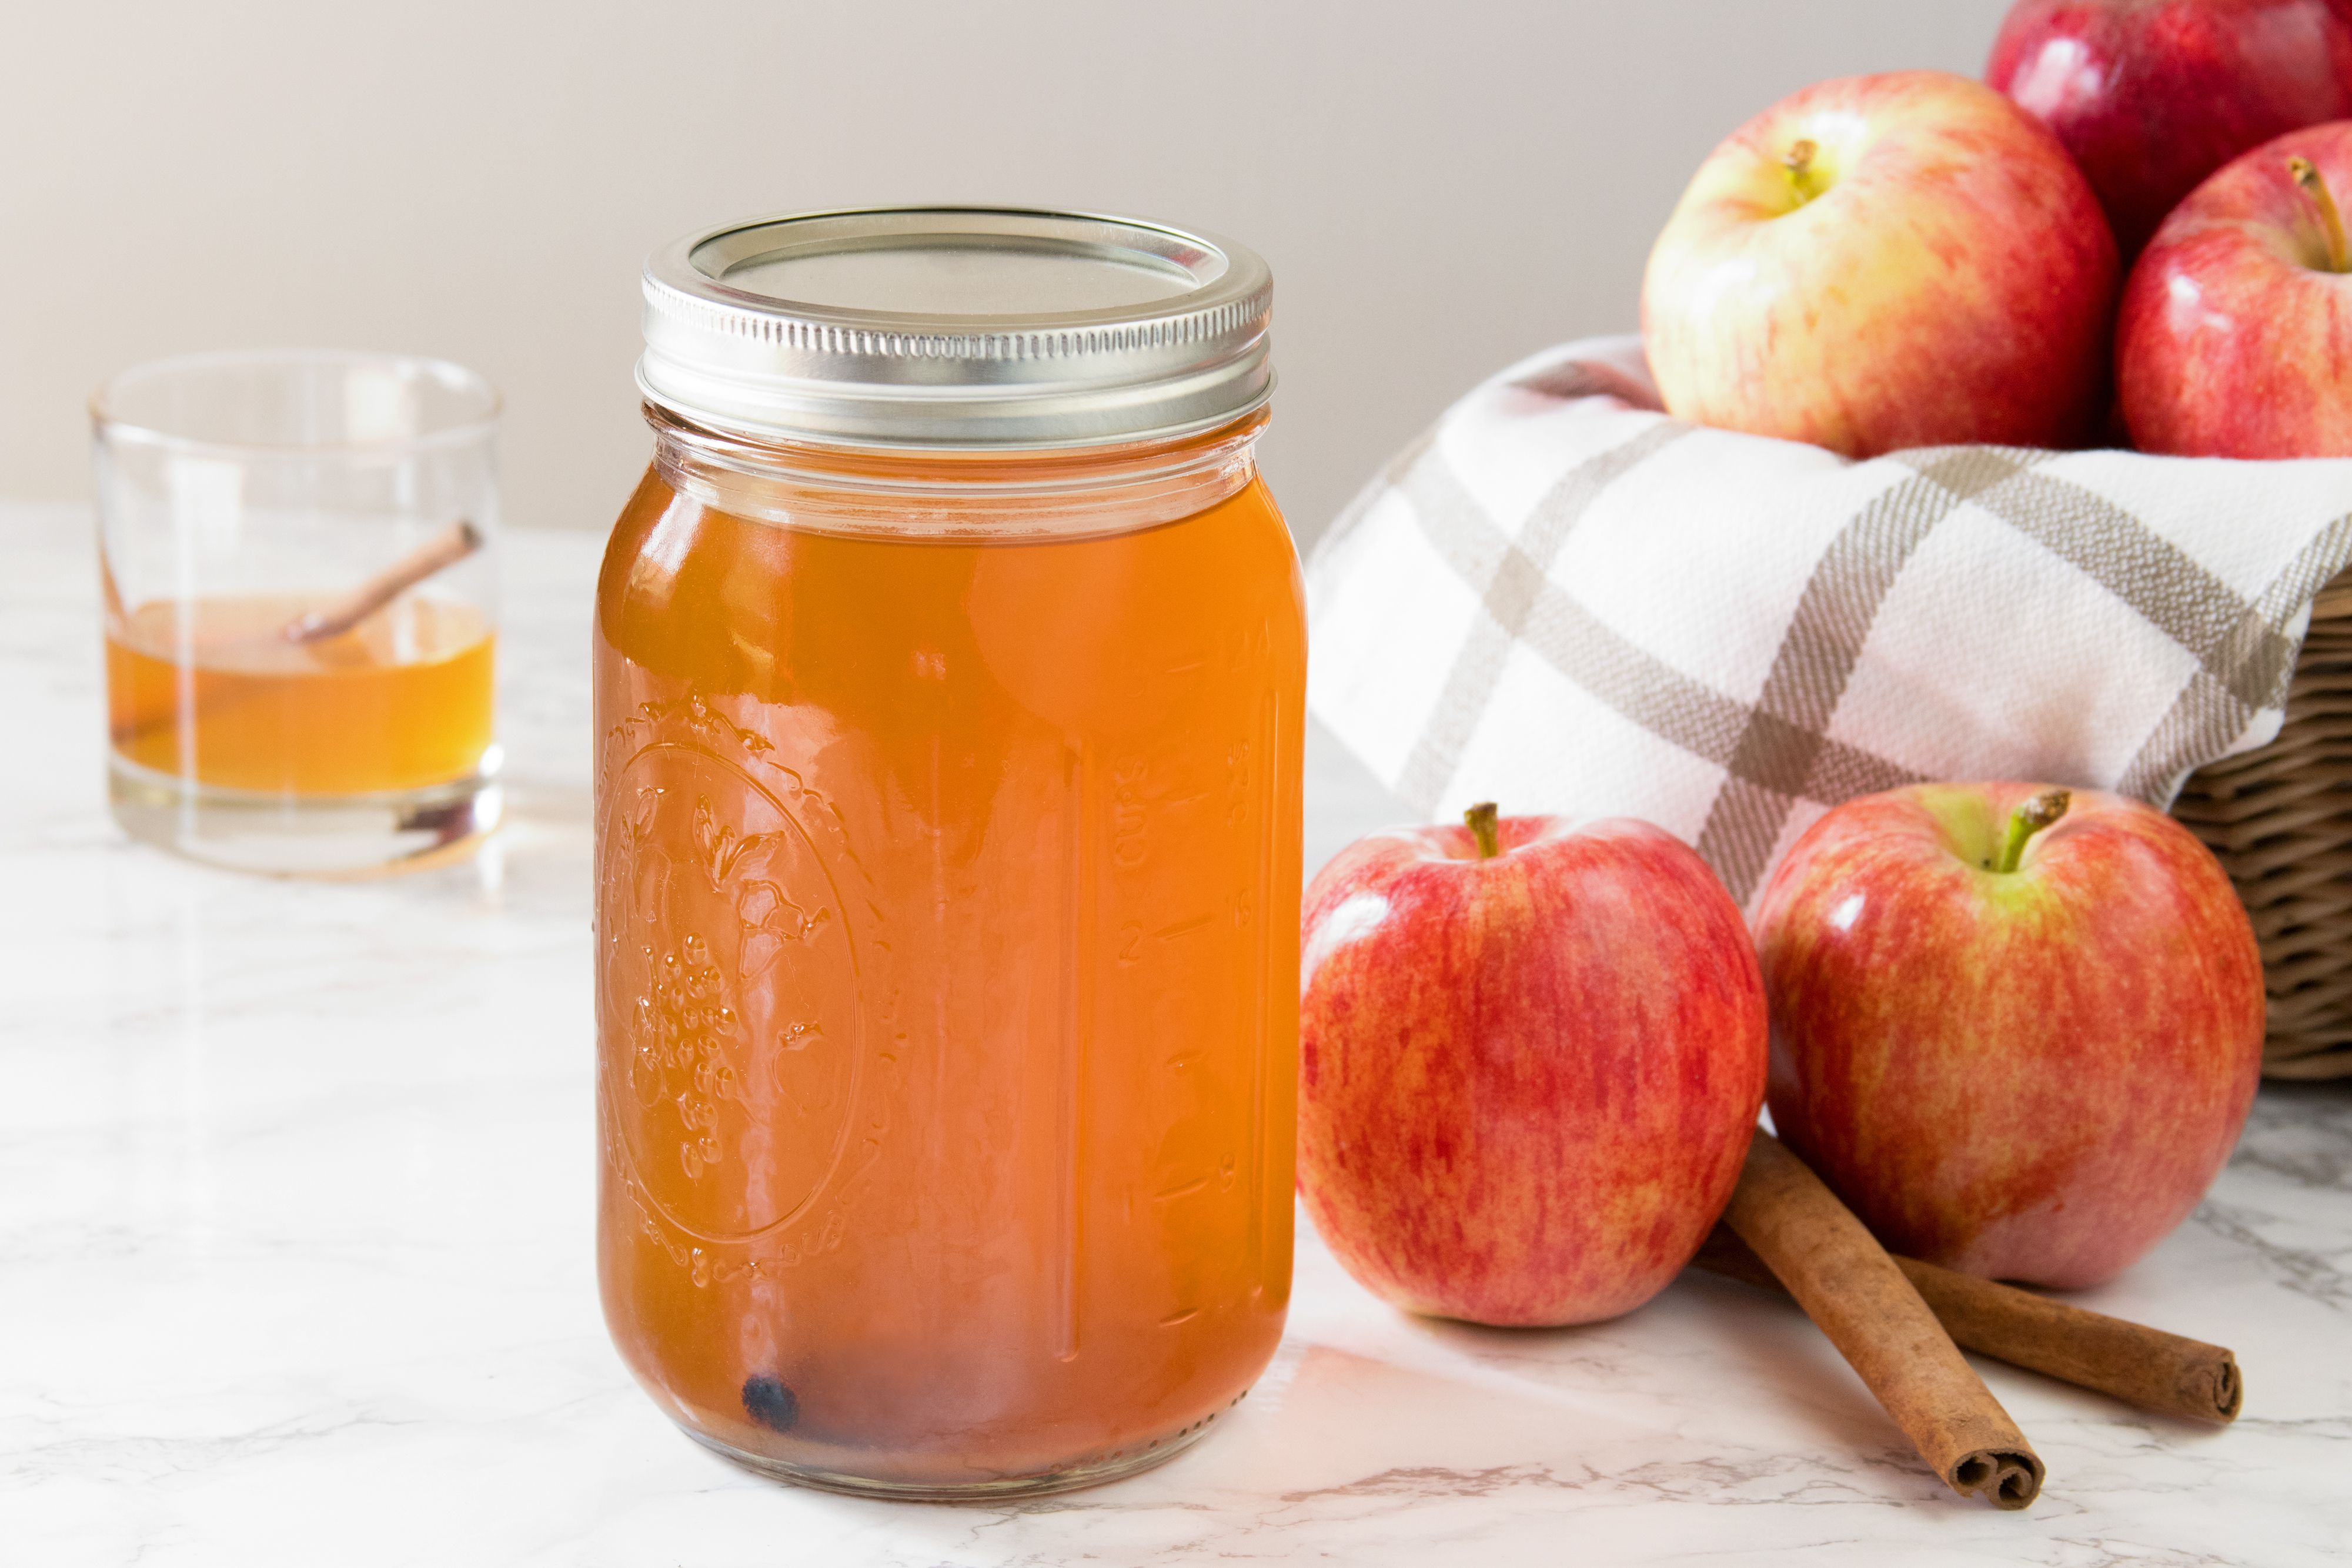 Homemade Apple Pie Moonshine Is a Fun Fall Project